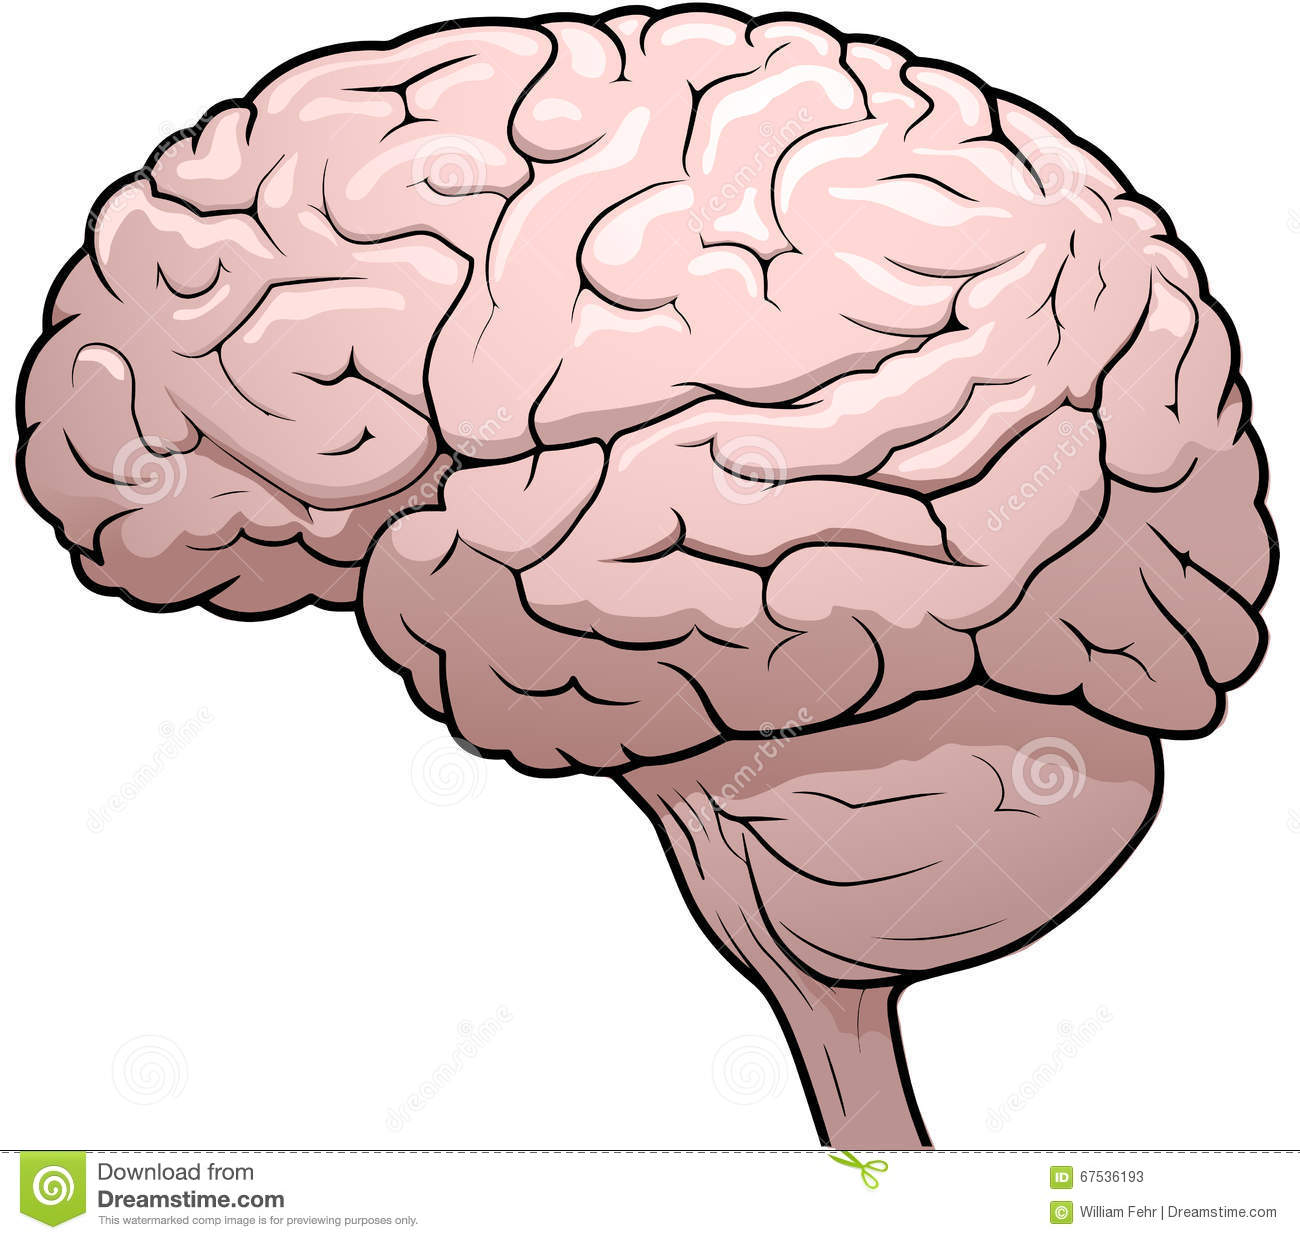 the human brain The human brain how your brain works  ©howstuffworkscom your brain is made of approximately 100 billion nerve cells, called neurons.